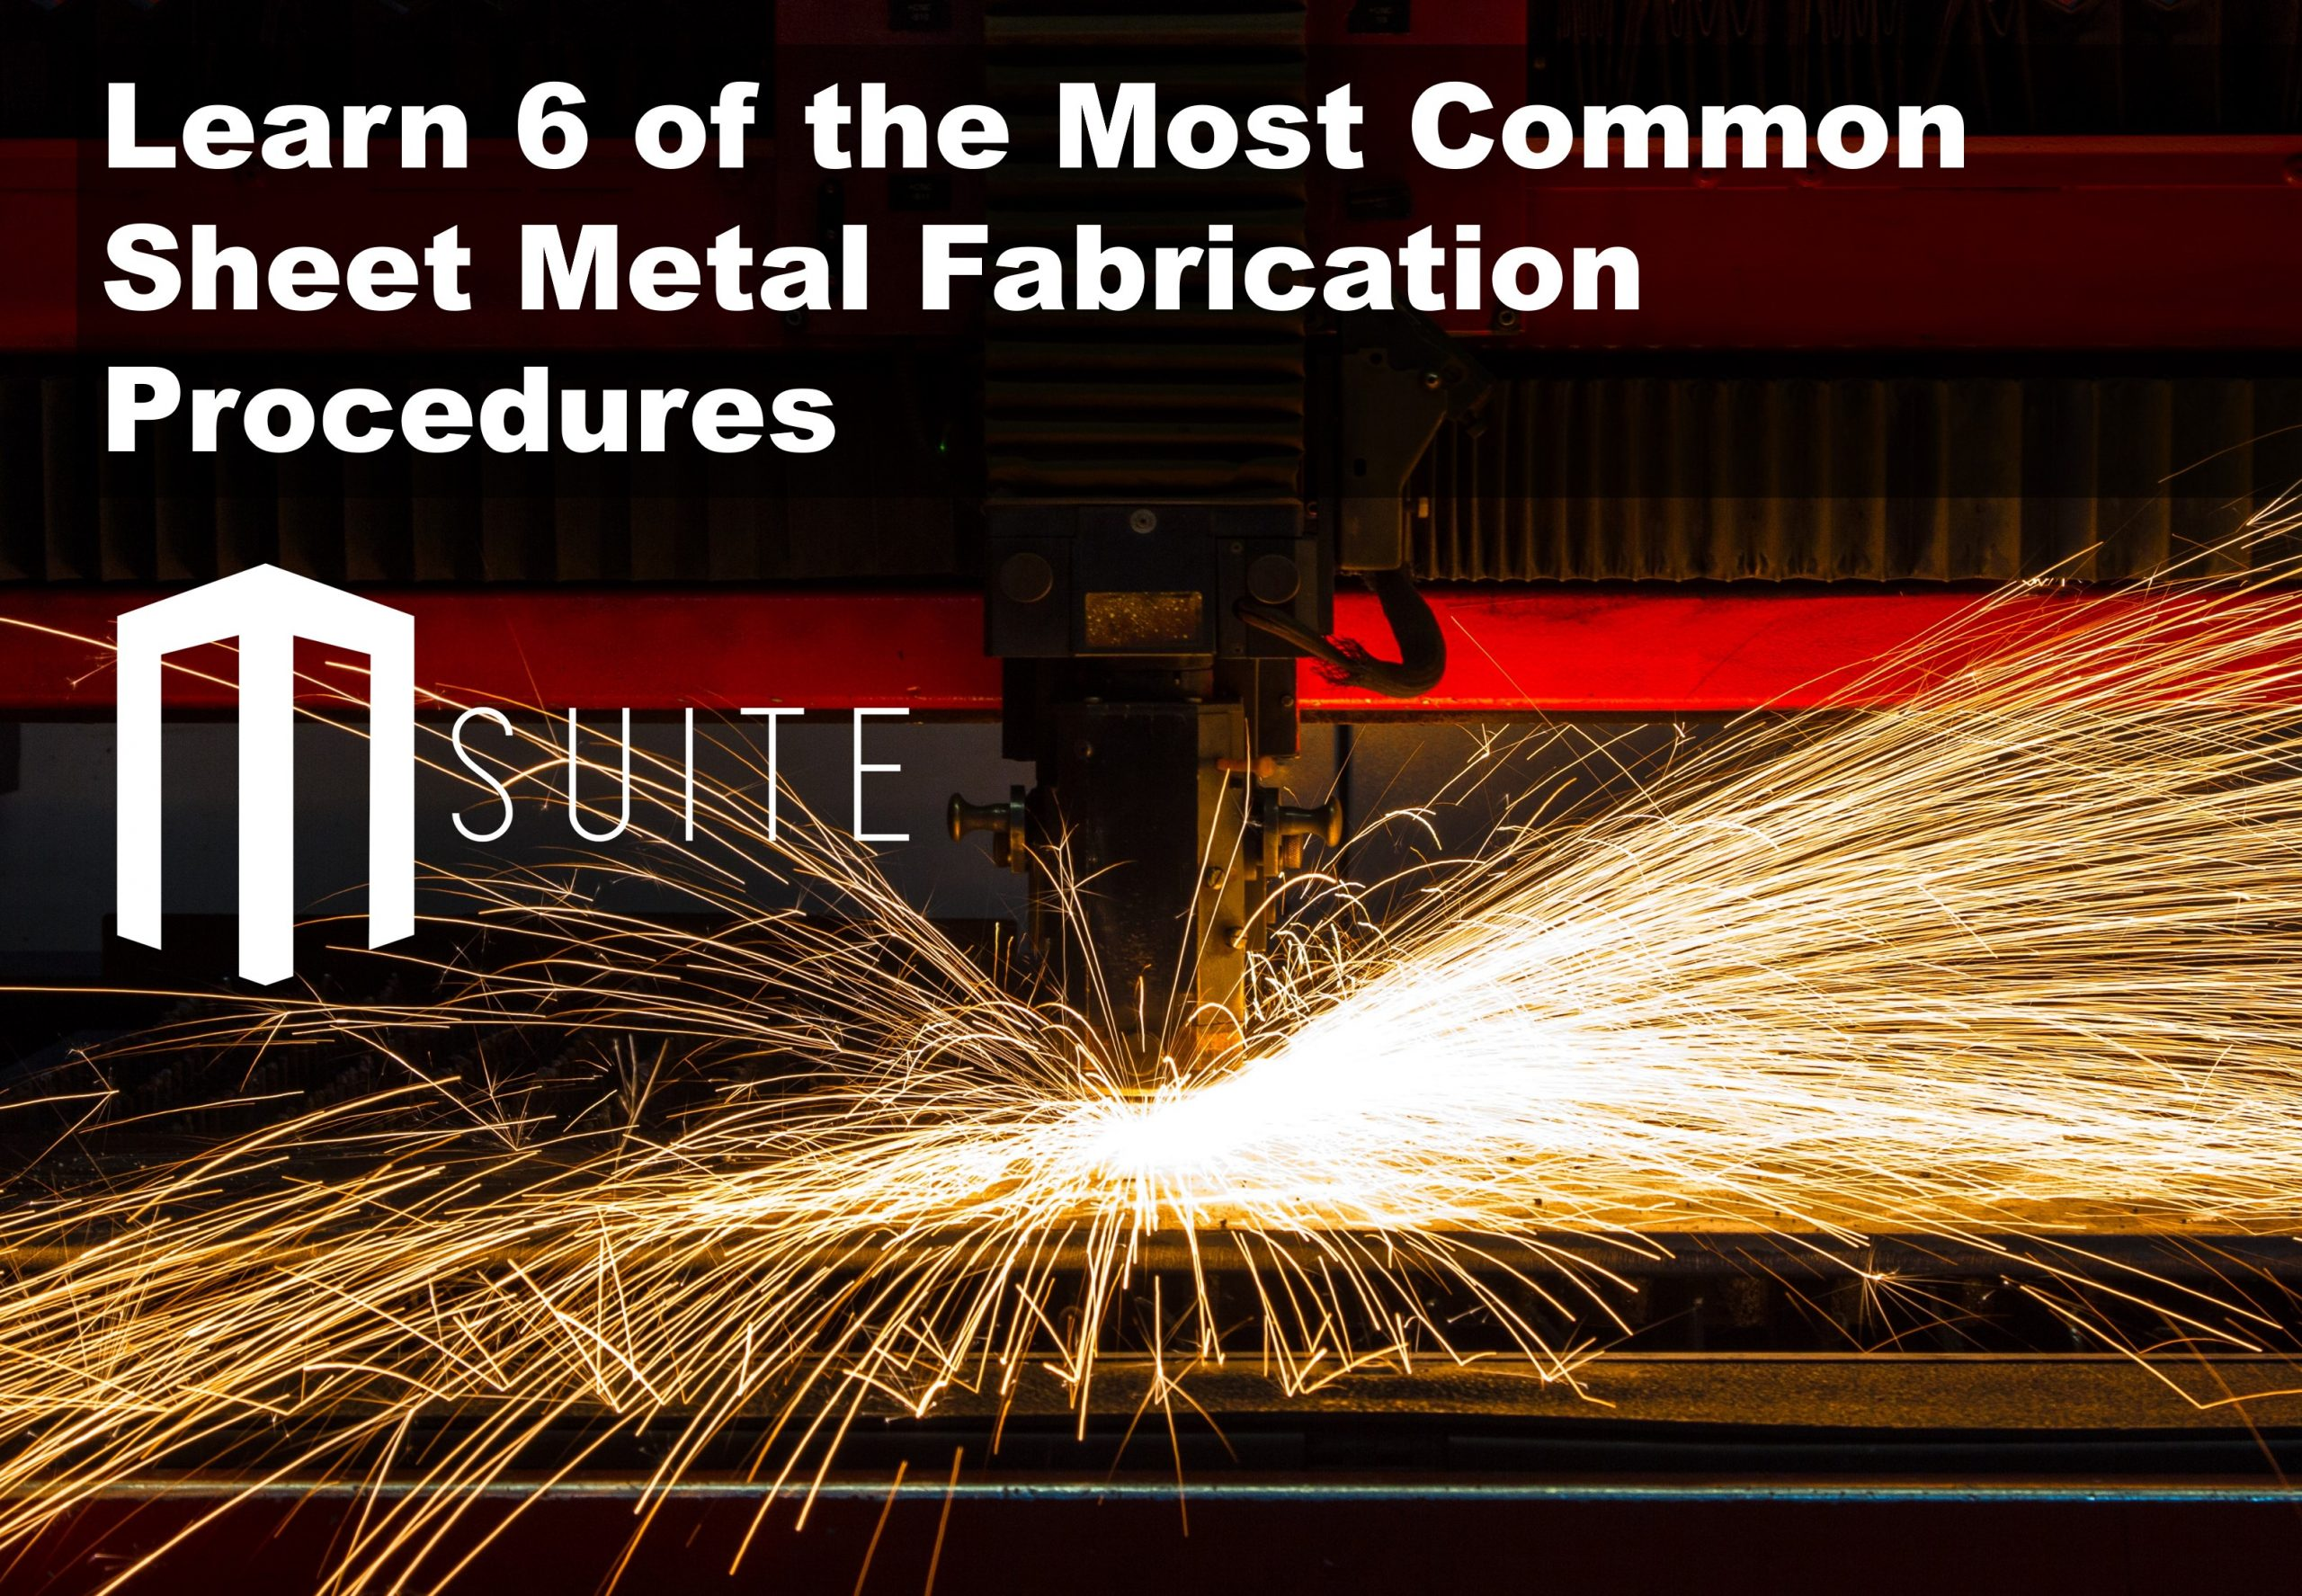 Learn 6 of the Most Common Sheet Metal Fabrication Procedures